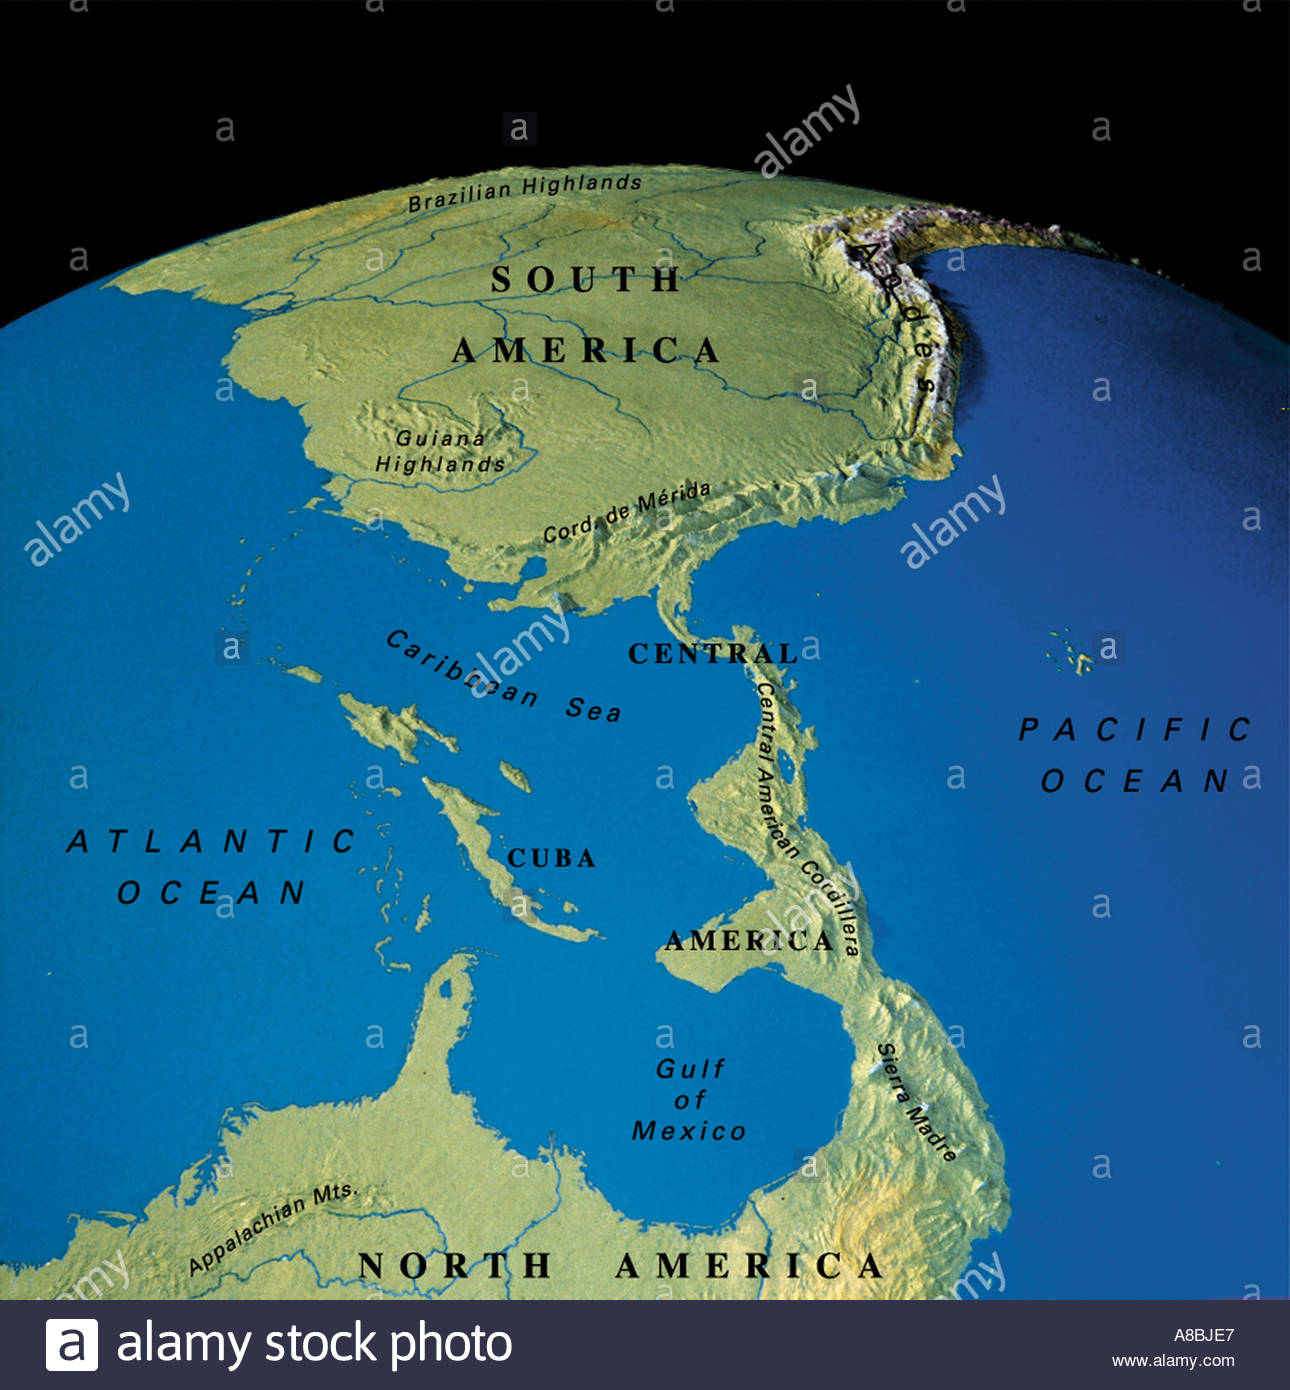 Map maps globe north america stock photos map maps globe north map maps globe north america south america caribbean cuba venezuela columbia stock image gumiabroncs Image collections